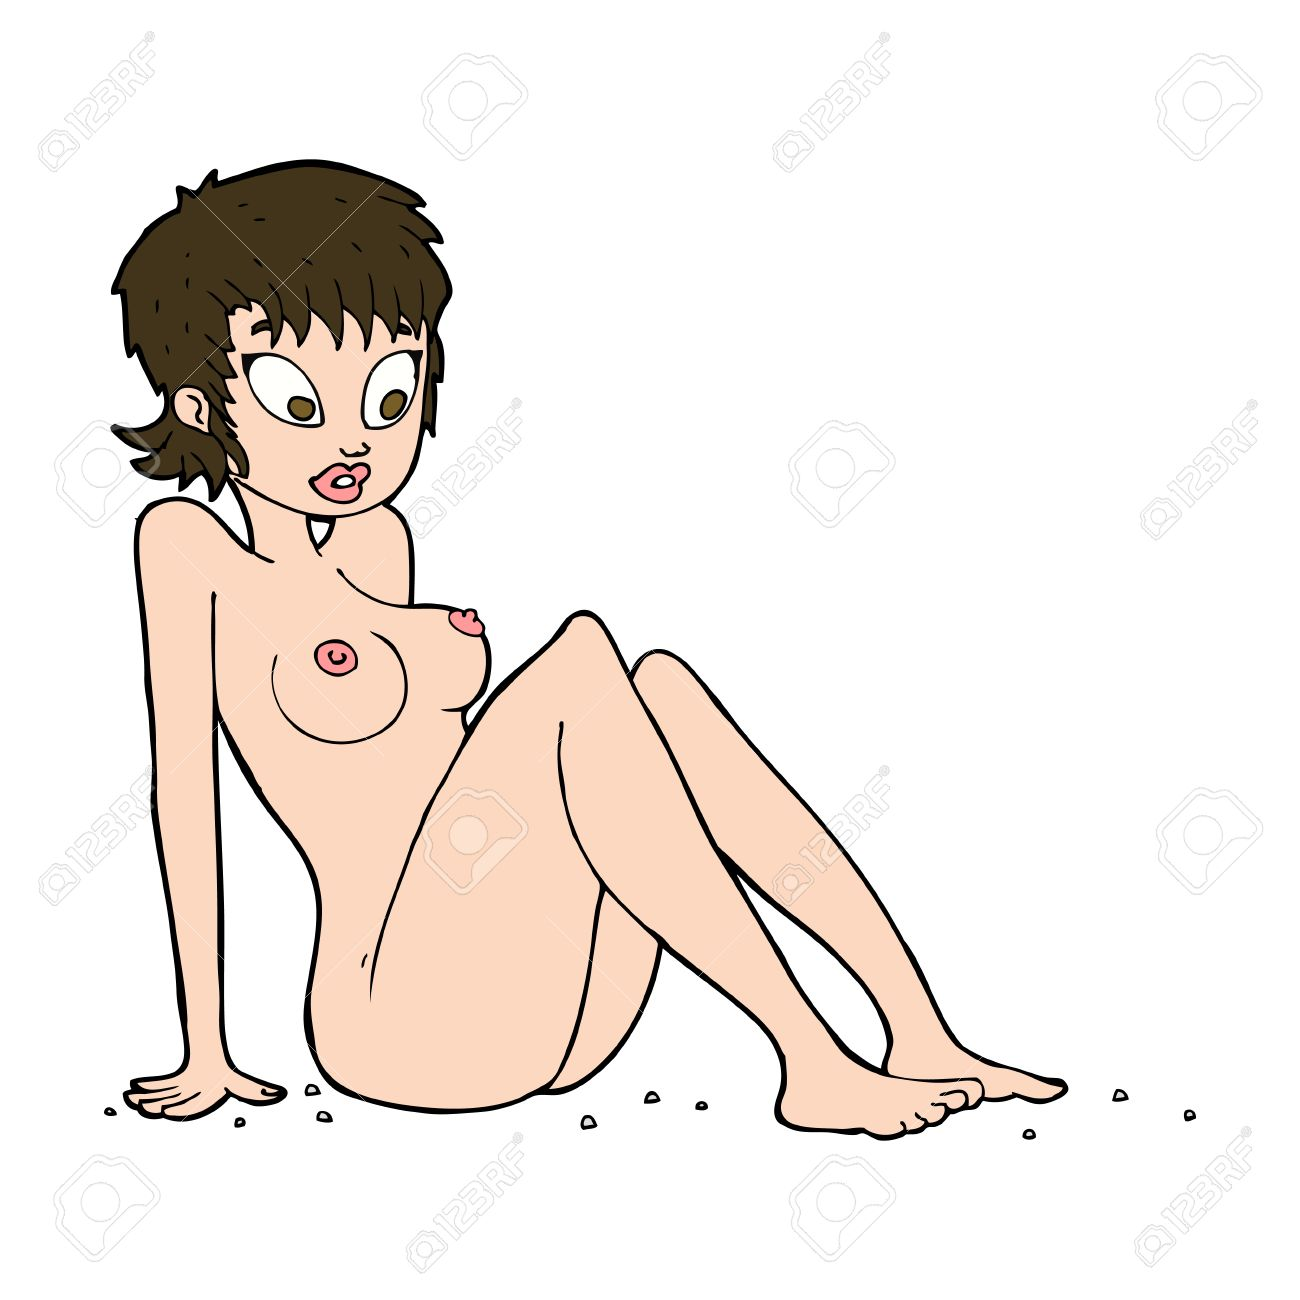 Cartoon naked picture woman